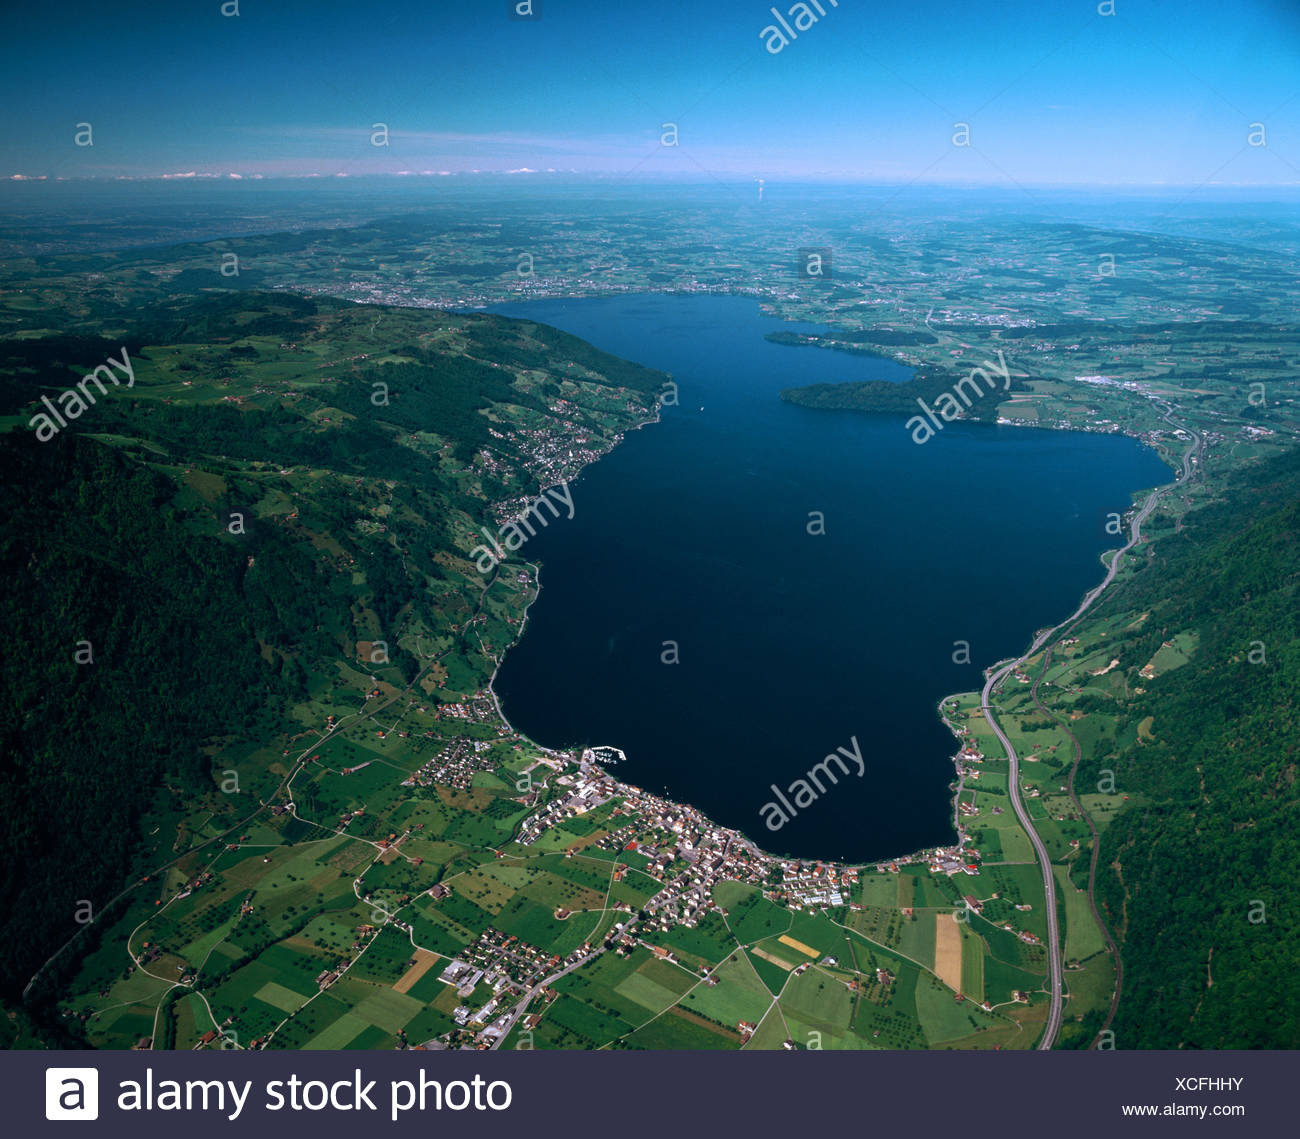 behind Zurich cartographic aerial photo aerial view scenery Switzerland from above full shot in front ahead - Stock Image